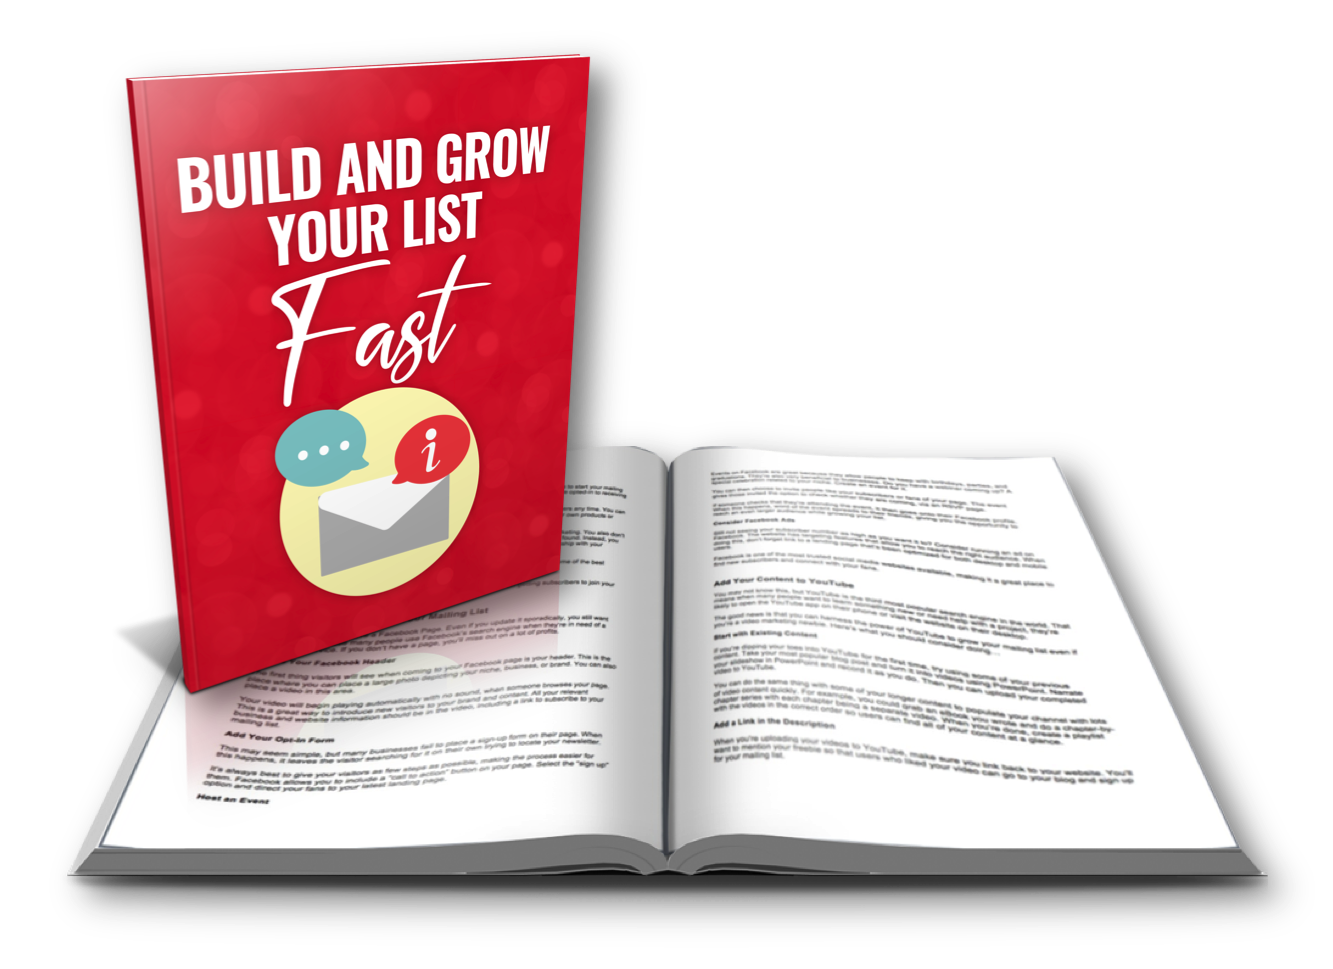 Build and Grow Your List Fast